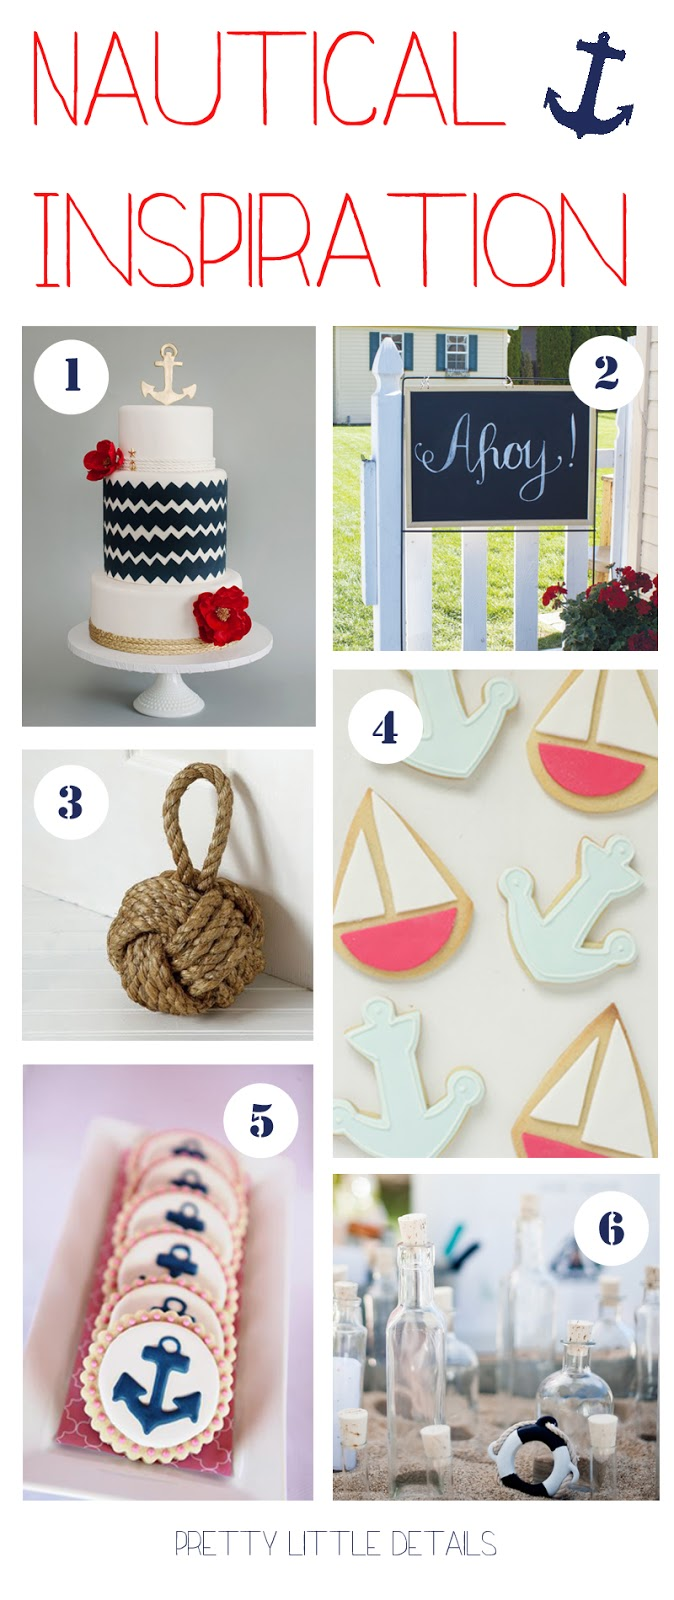 Nautical Inspiration from Pretty Little Details